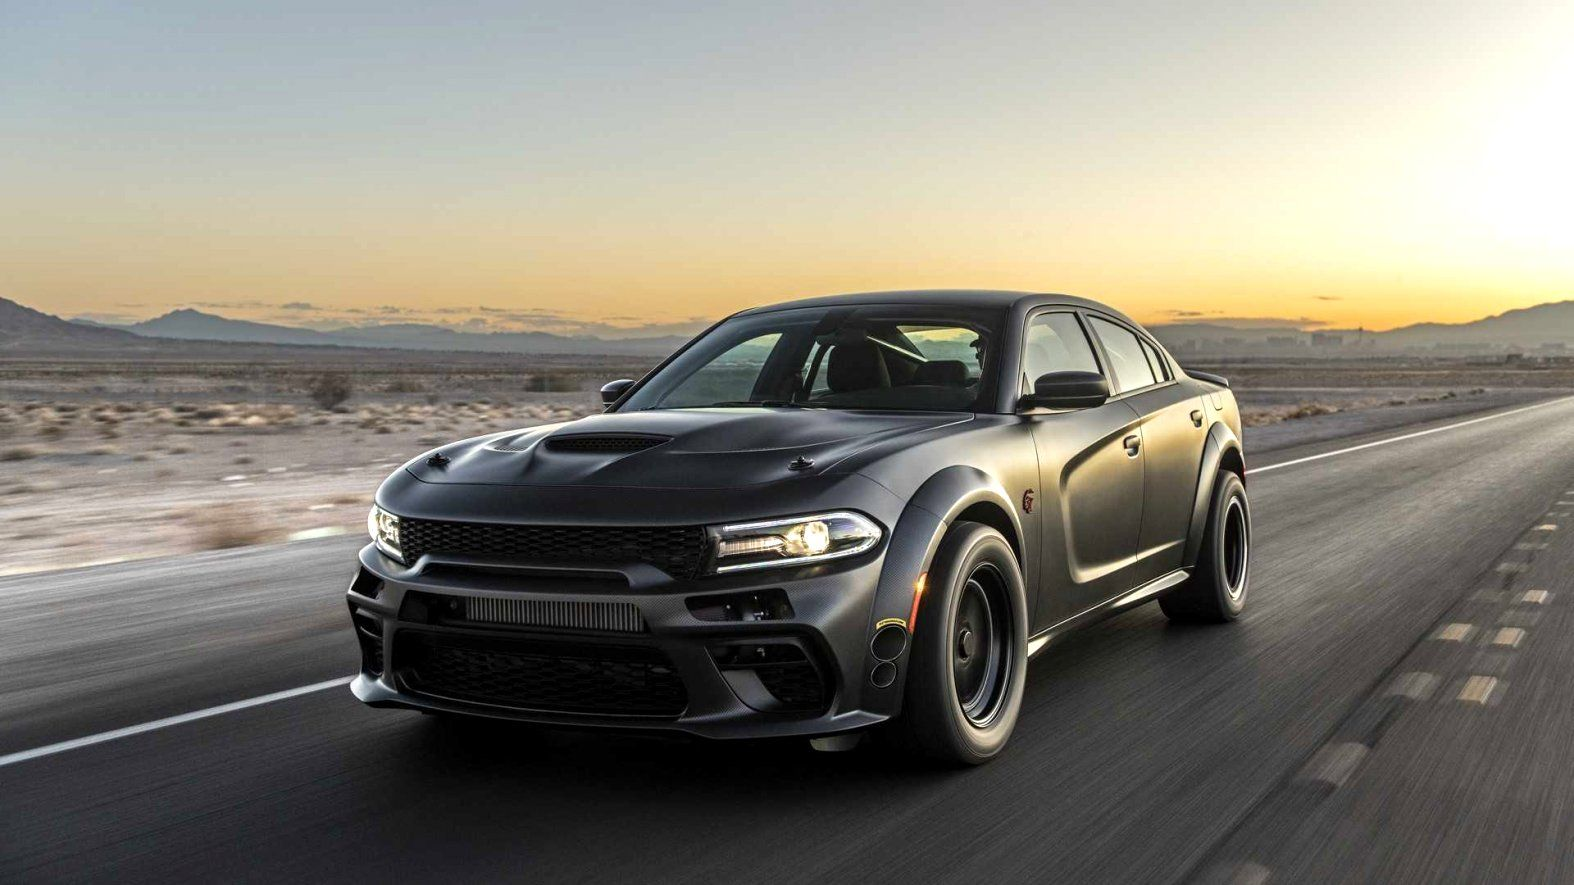 Dodge Supercharger 2020 Release Date Dodge Charger Supercharger Charger Srt Hellcat